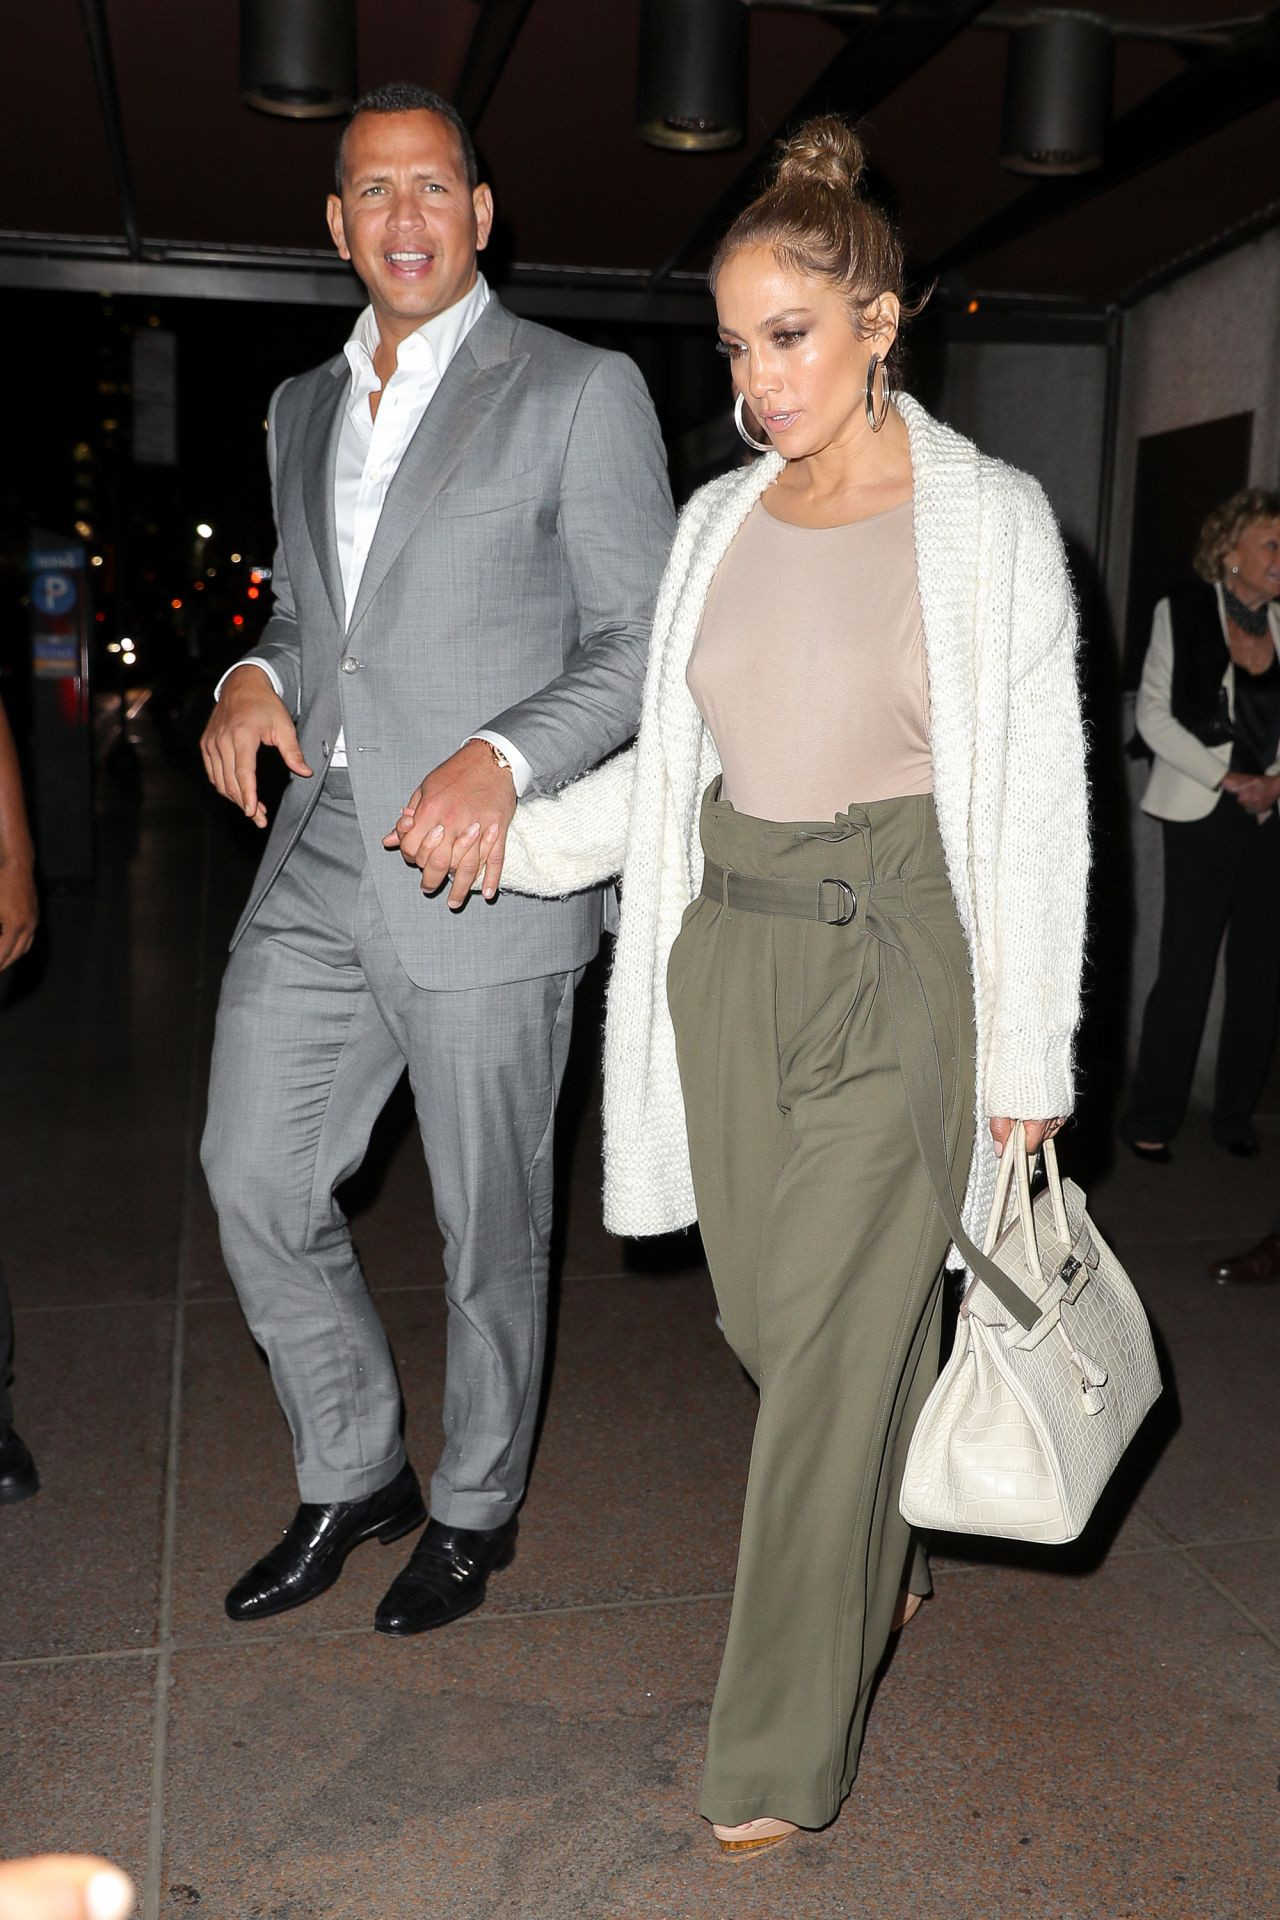 jennifer-lopez-and-alex-rodriguez-leaving-the-pool-in-new-york-city-07-27-2017-3